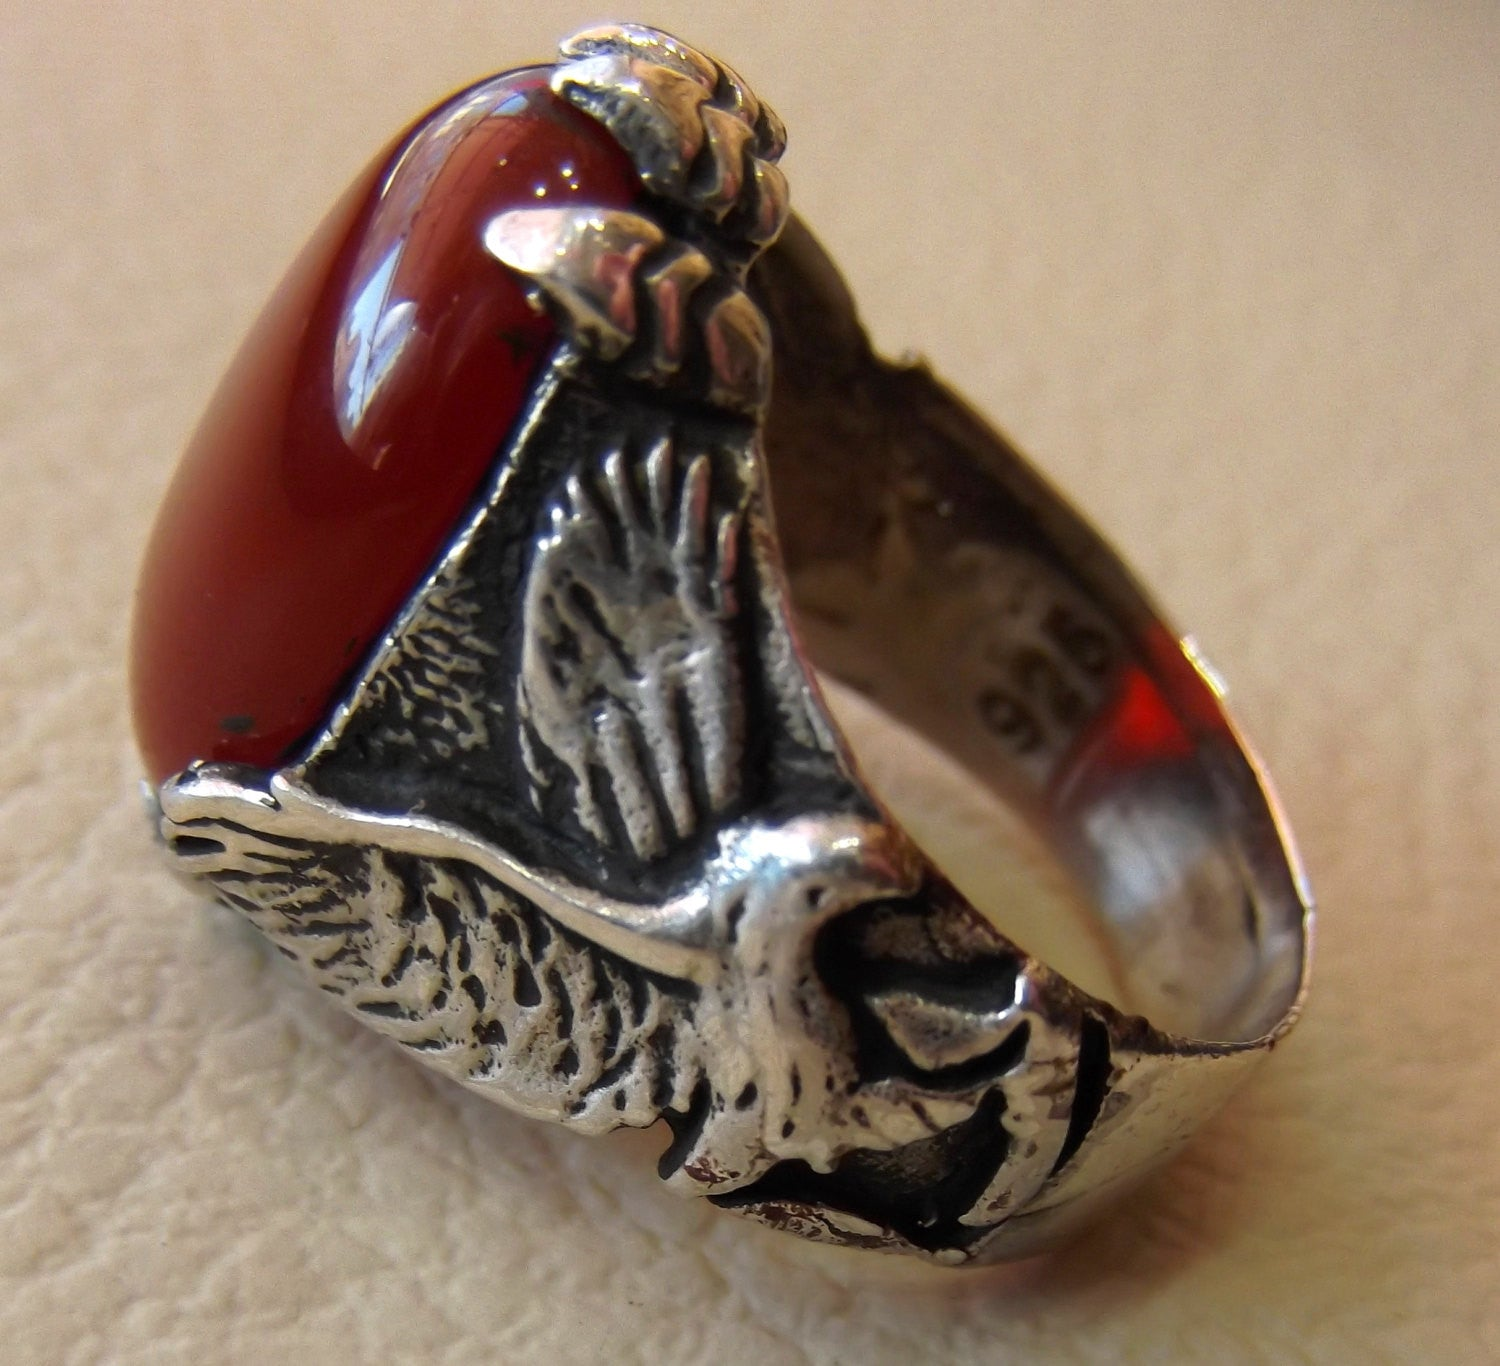 carnelian liver agate yamani aqeeq semi precious natural red stone man eagle ring sterling silver 925 oxidized jewelry any size fast ship